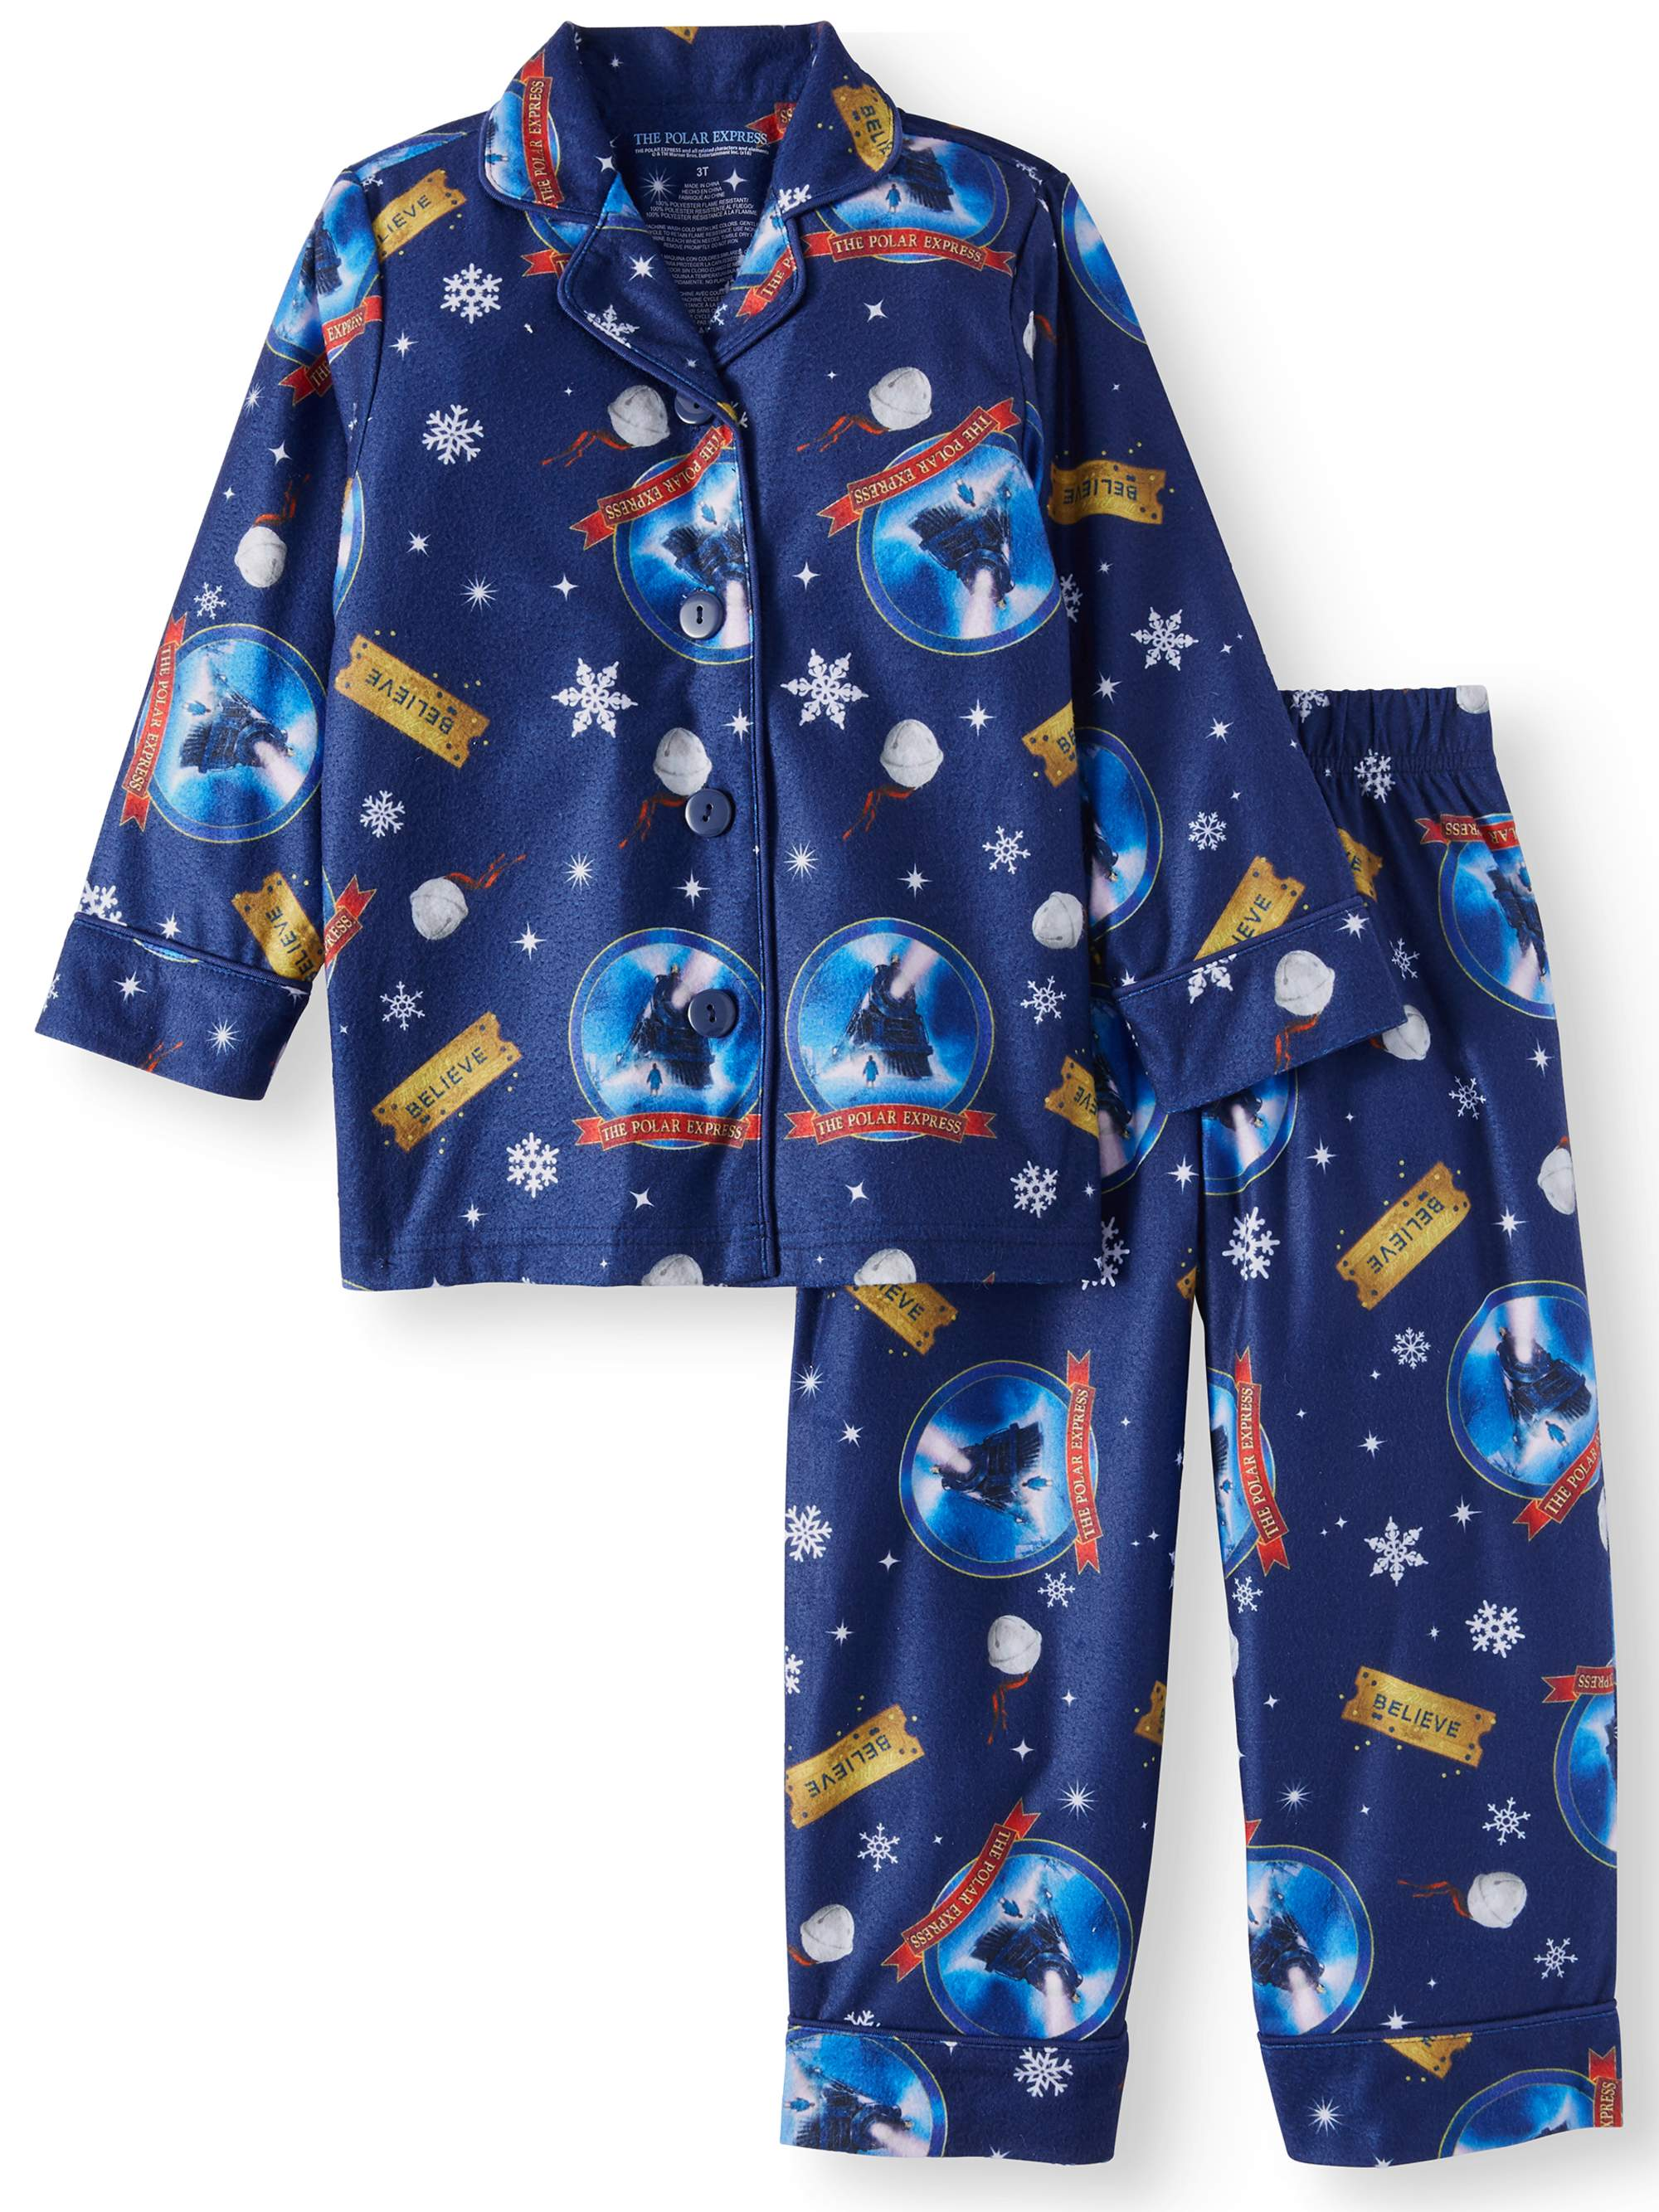 Toys From Walmart For Girls: Long Sleeve Classic Coat Pajamas, 2